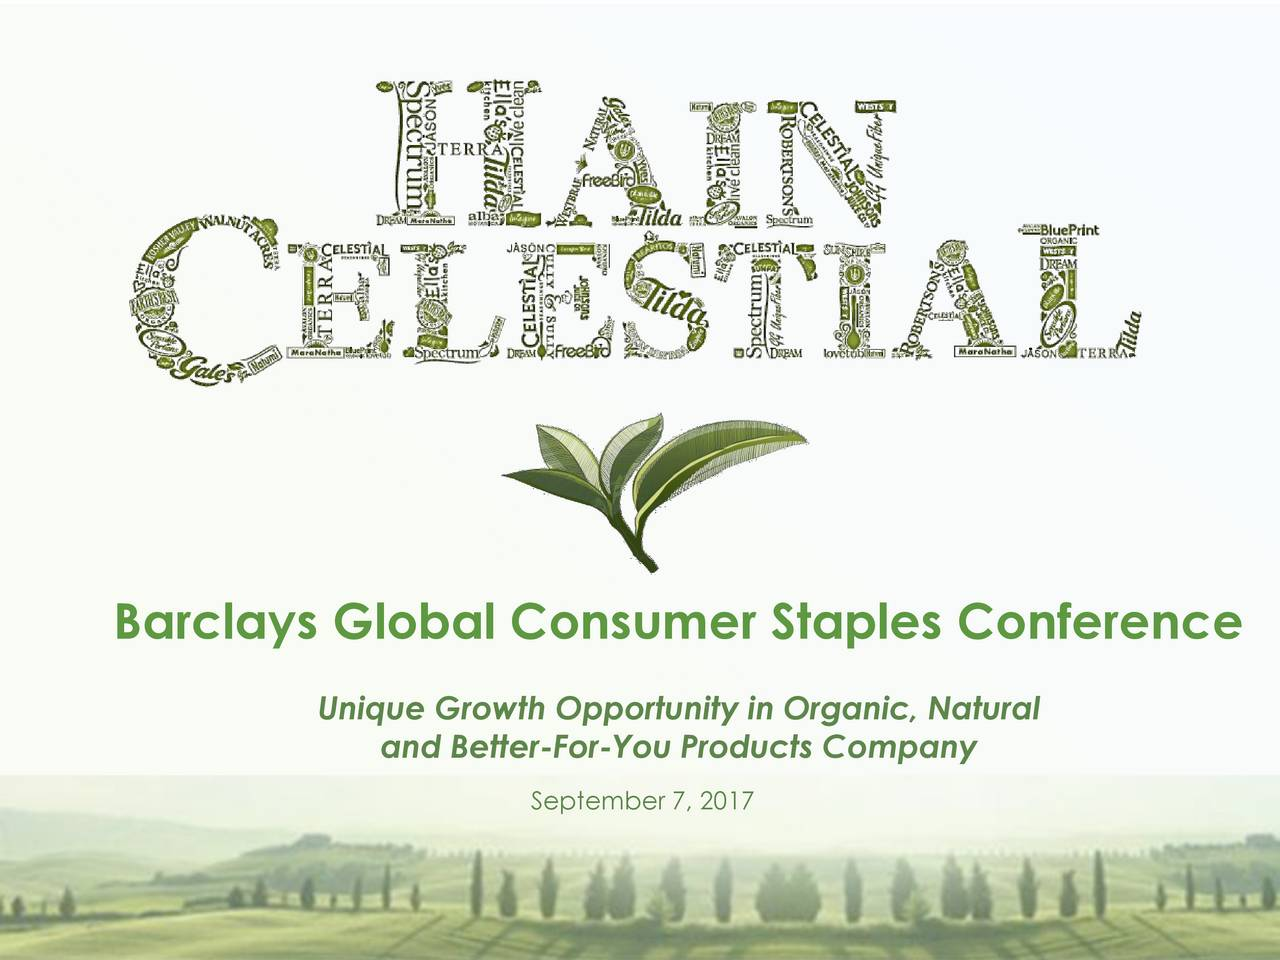 Barclays Global Consumer Staples Conference Unique Growth Opportunity in Organic, Natural and Better-For-You Products Company September 7, 2017